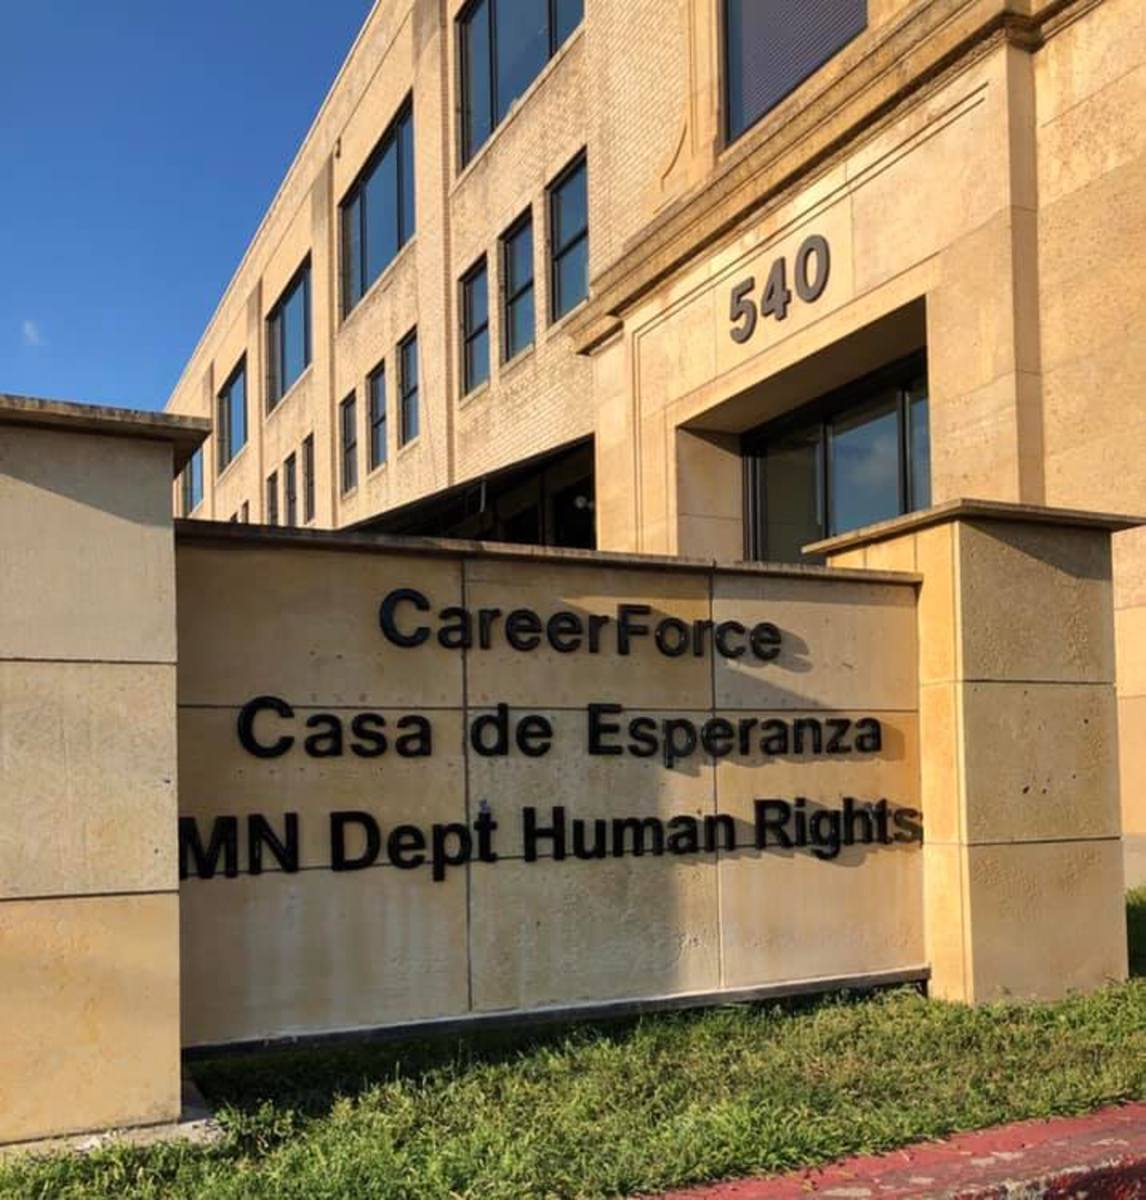 The St. Paul office for the Minnesota Department of Human Rights